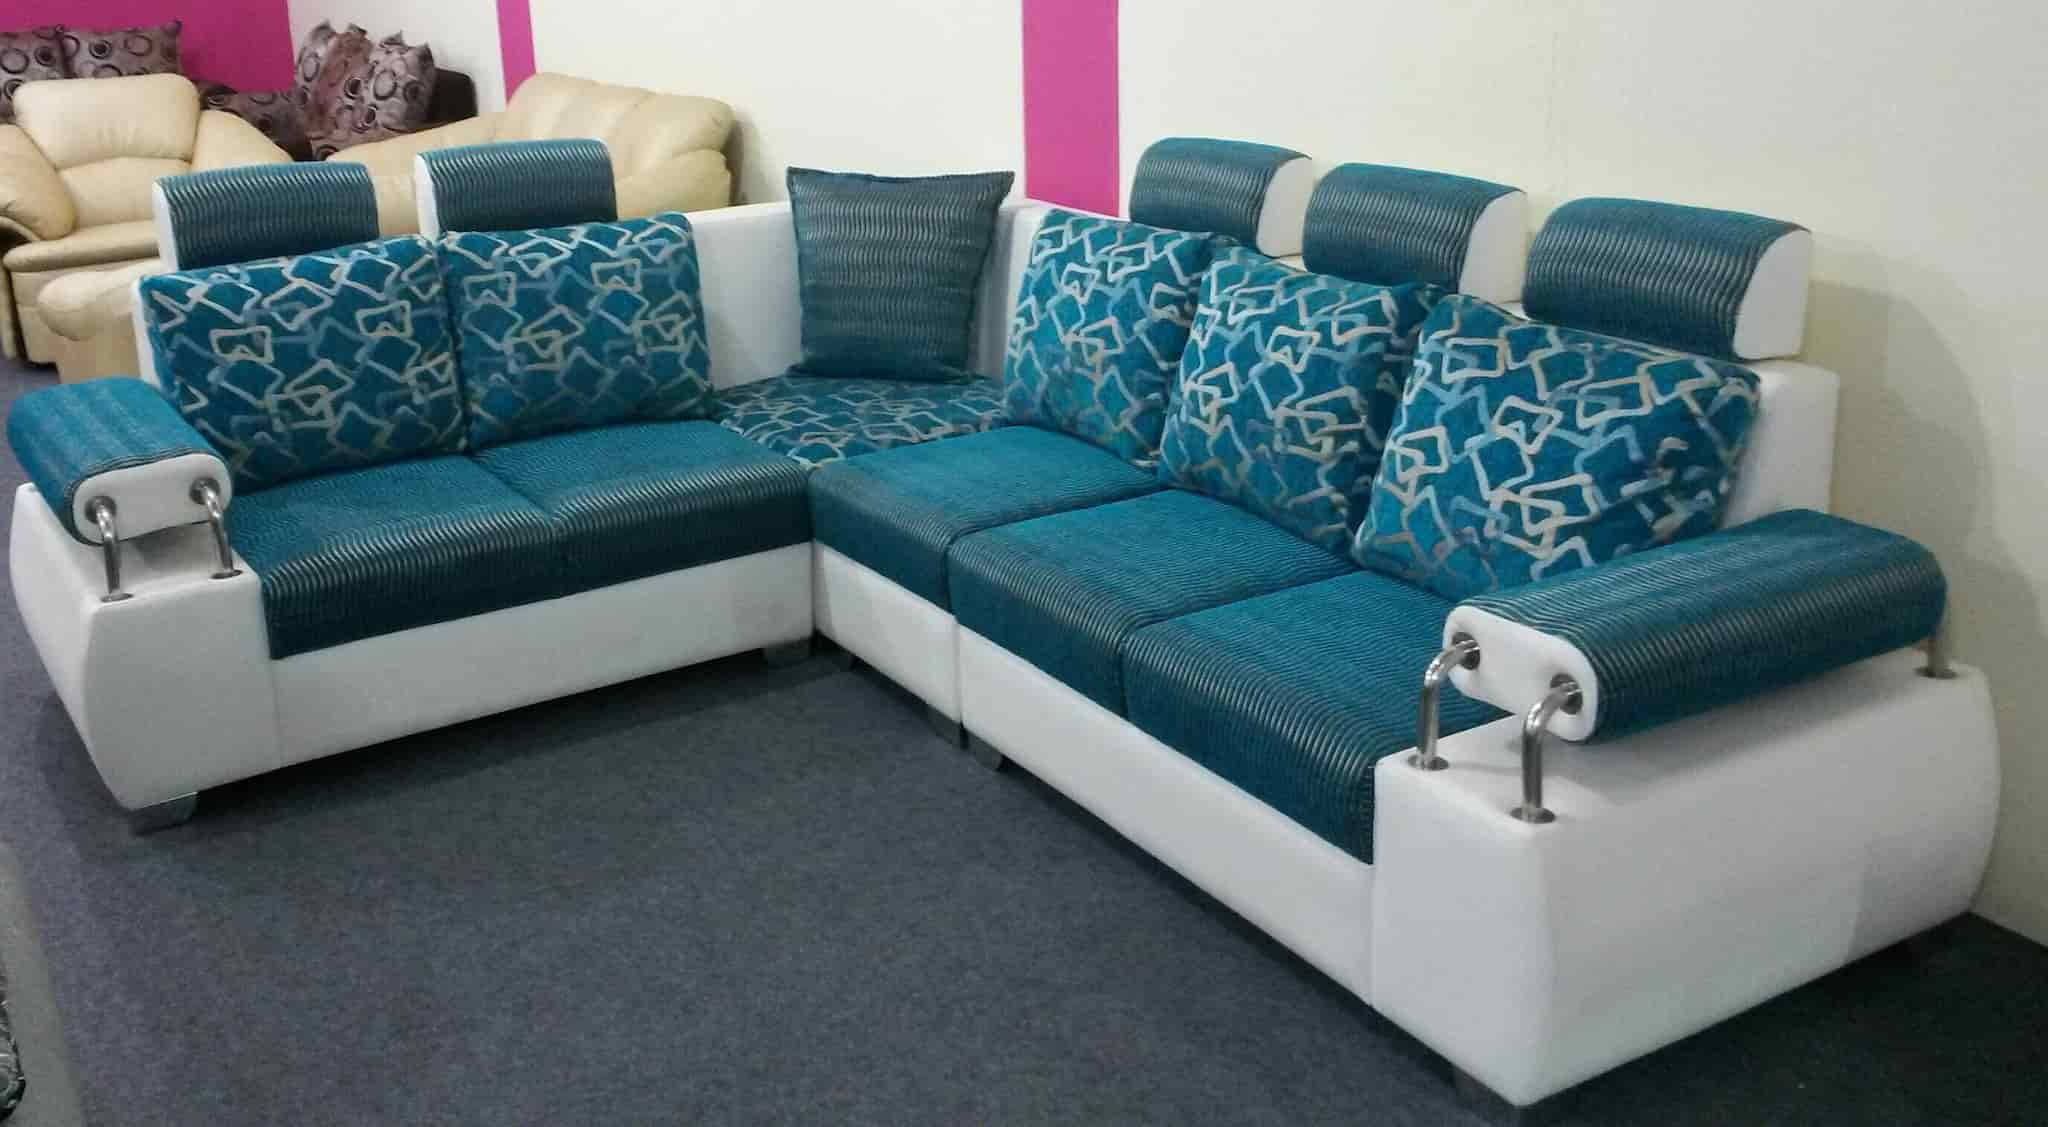 Lifestyle Sofas And Furnitures Erragadda Sofa Set Repair Services In Hyderabad Justdial